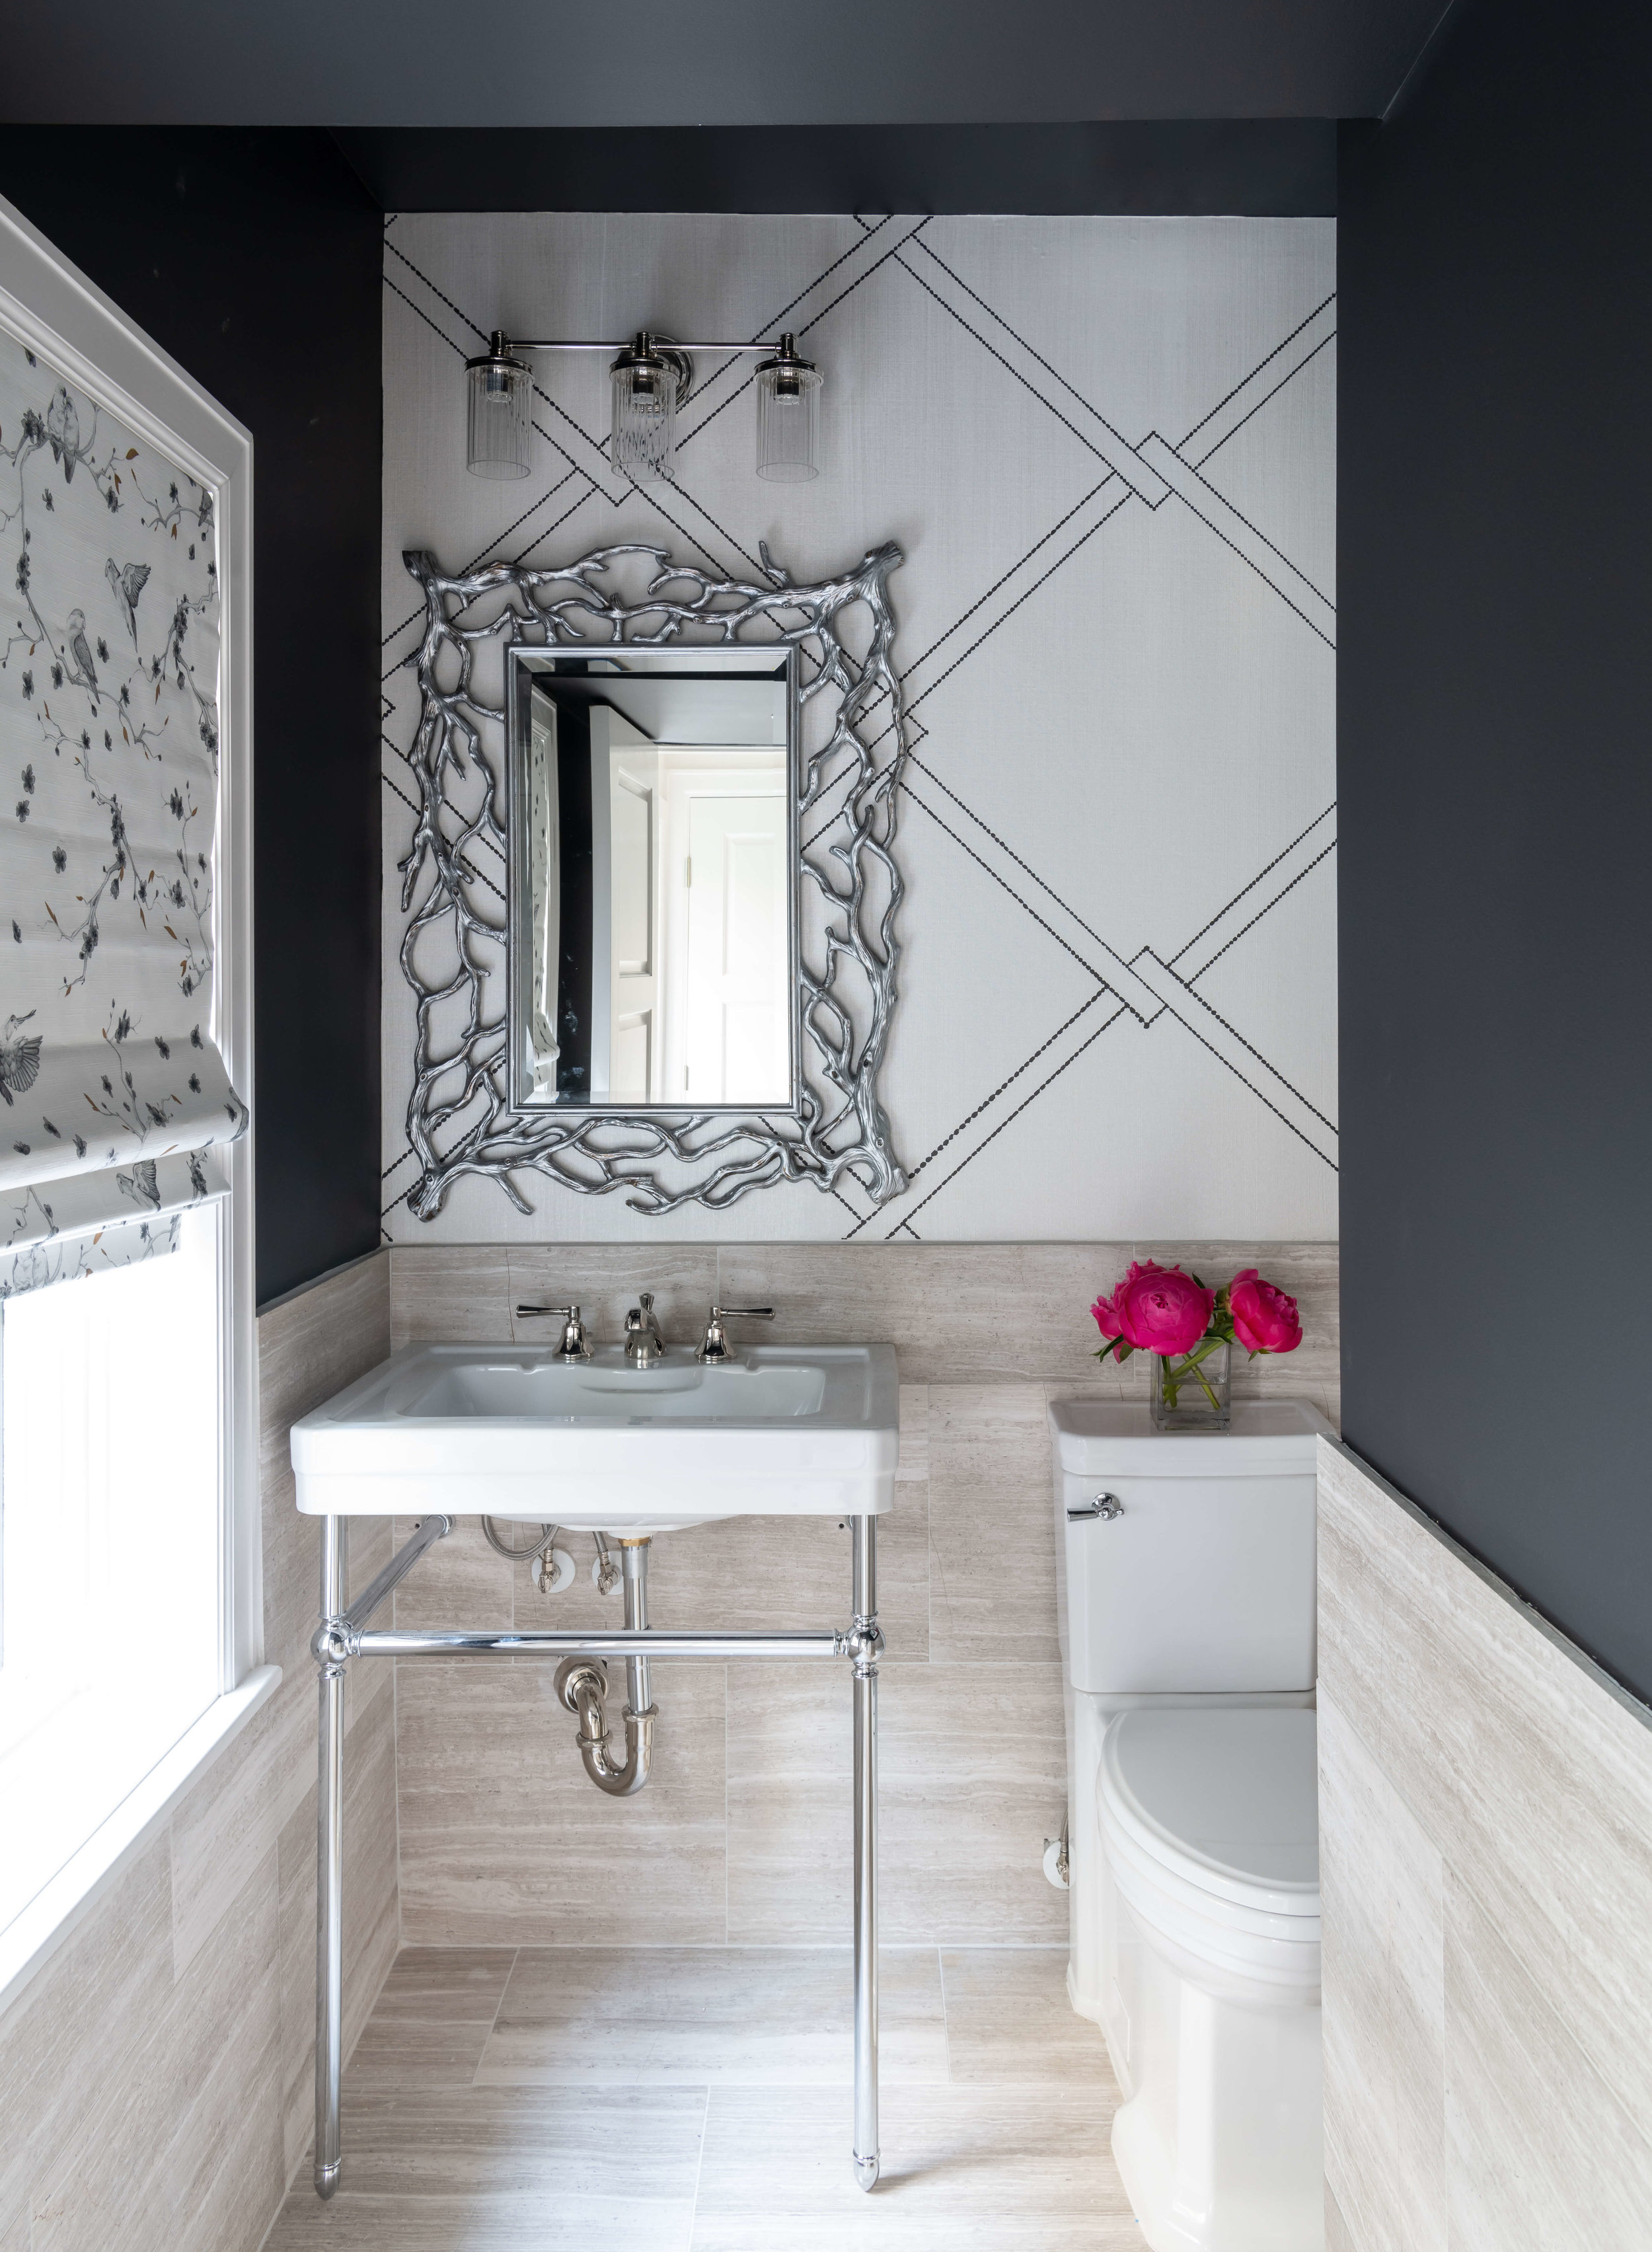 This pretty downstairs powder room with bold black walls and a graphic wall pattern was designed by Lauren Ashley of LA Designer Affair. | ASID River Oaks Showhouse, Photographer - Michael Hunter #powderroom #powderbath